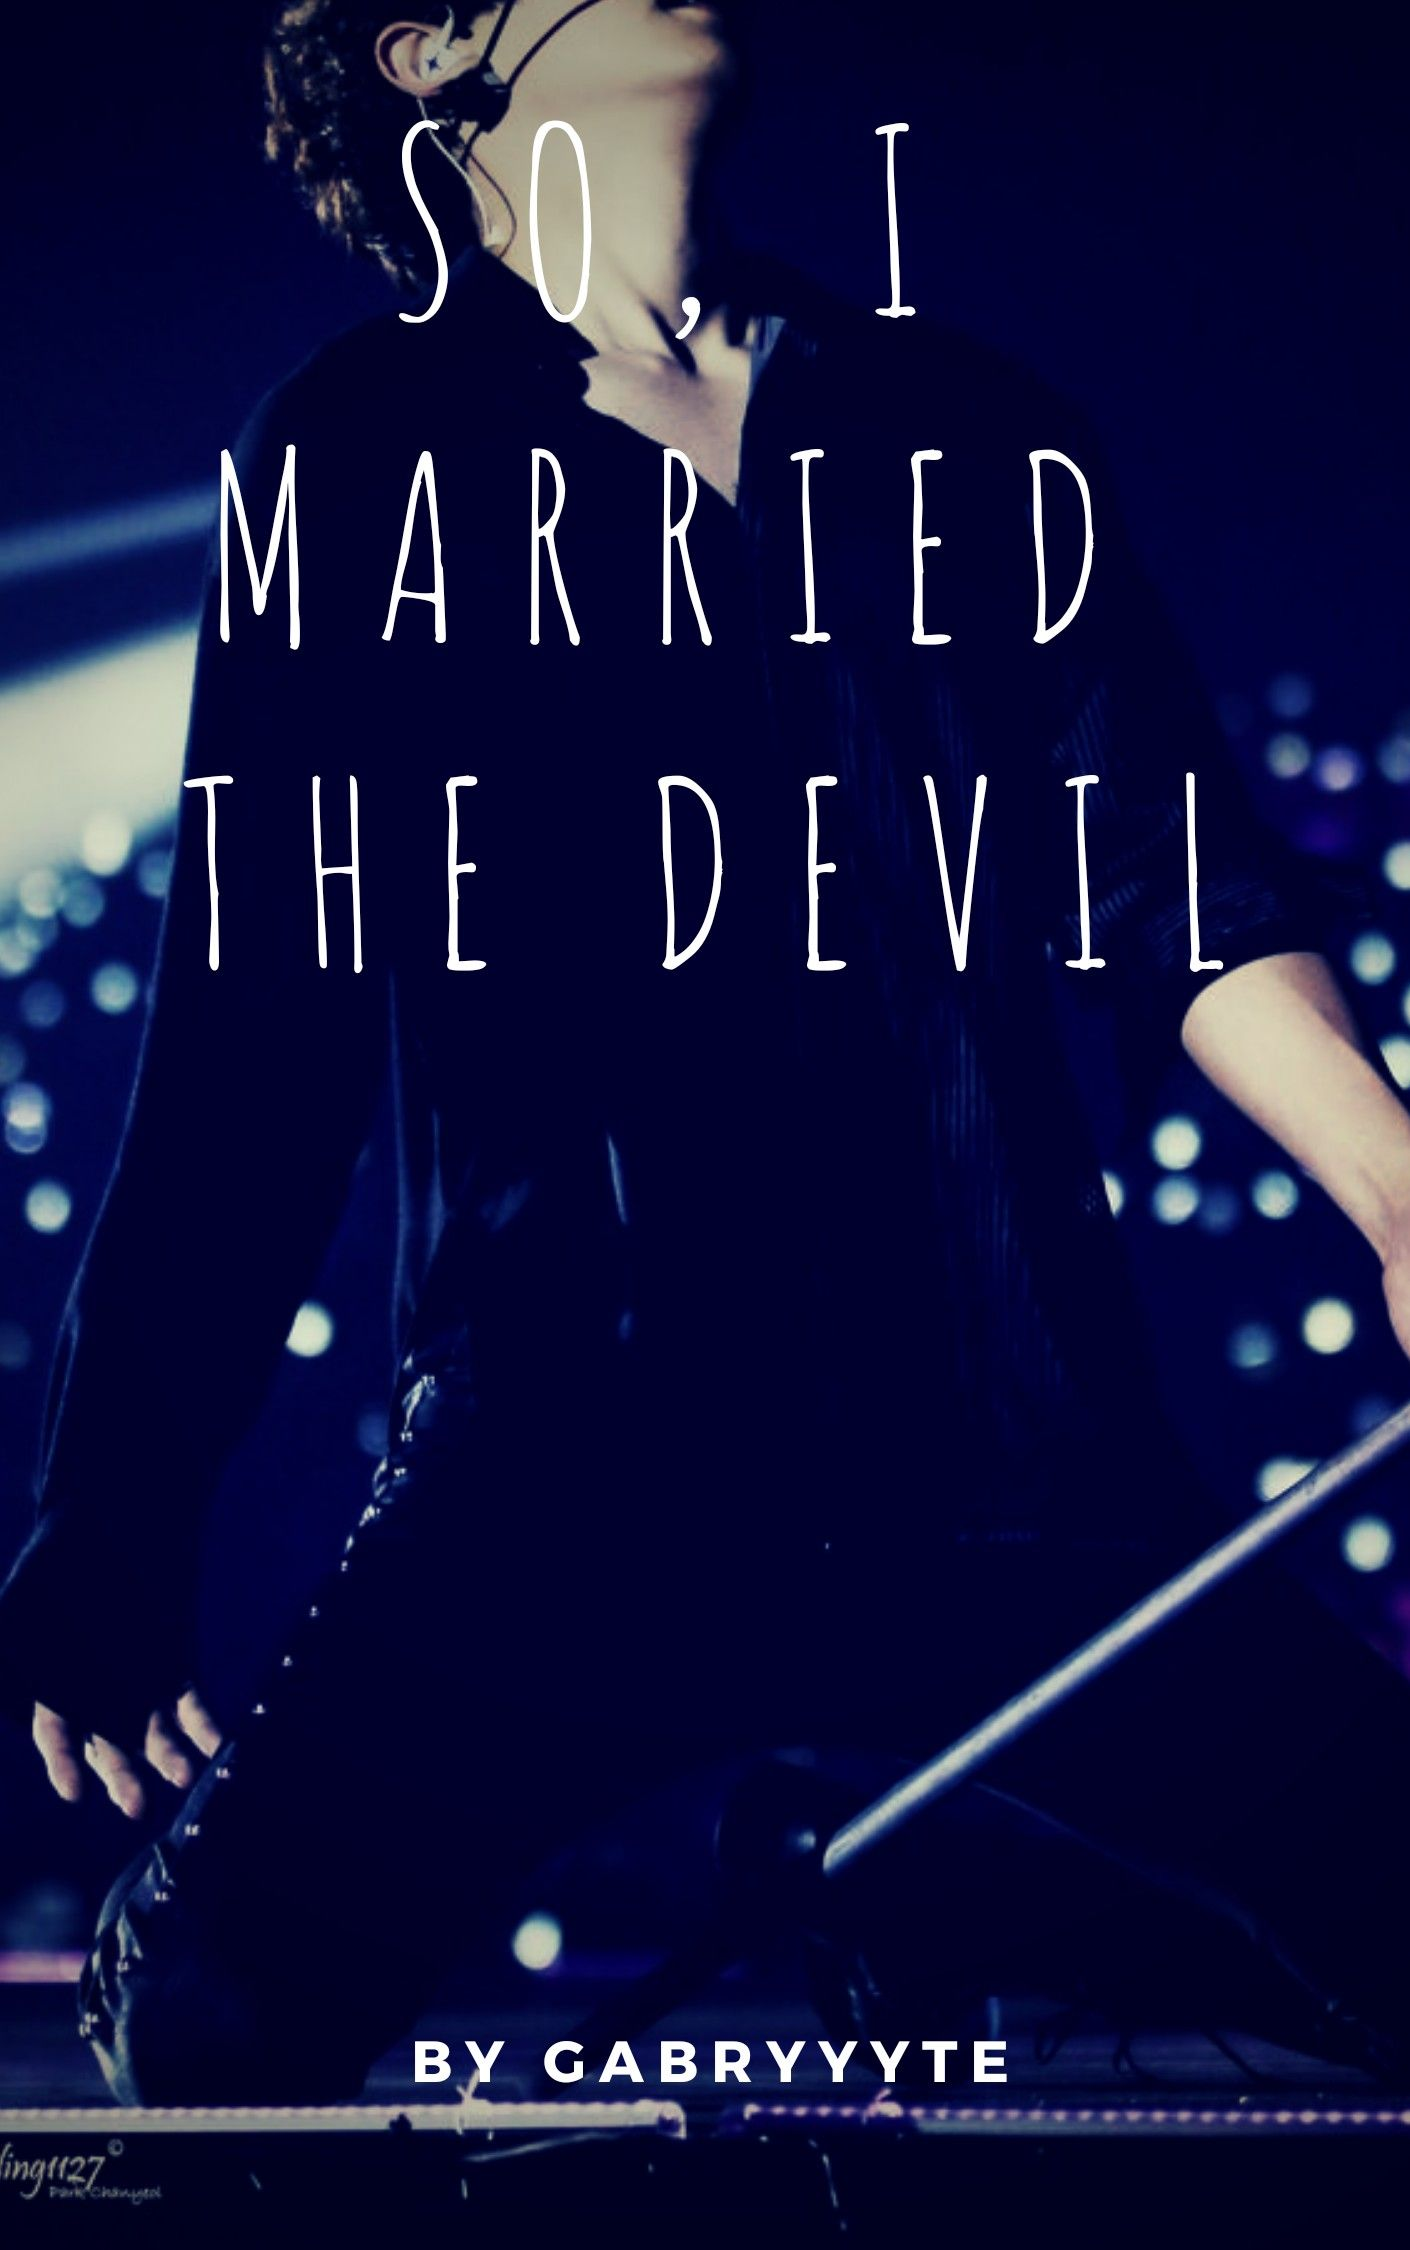 Check out my story on wattpad